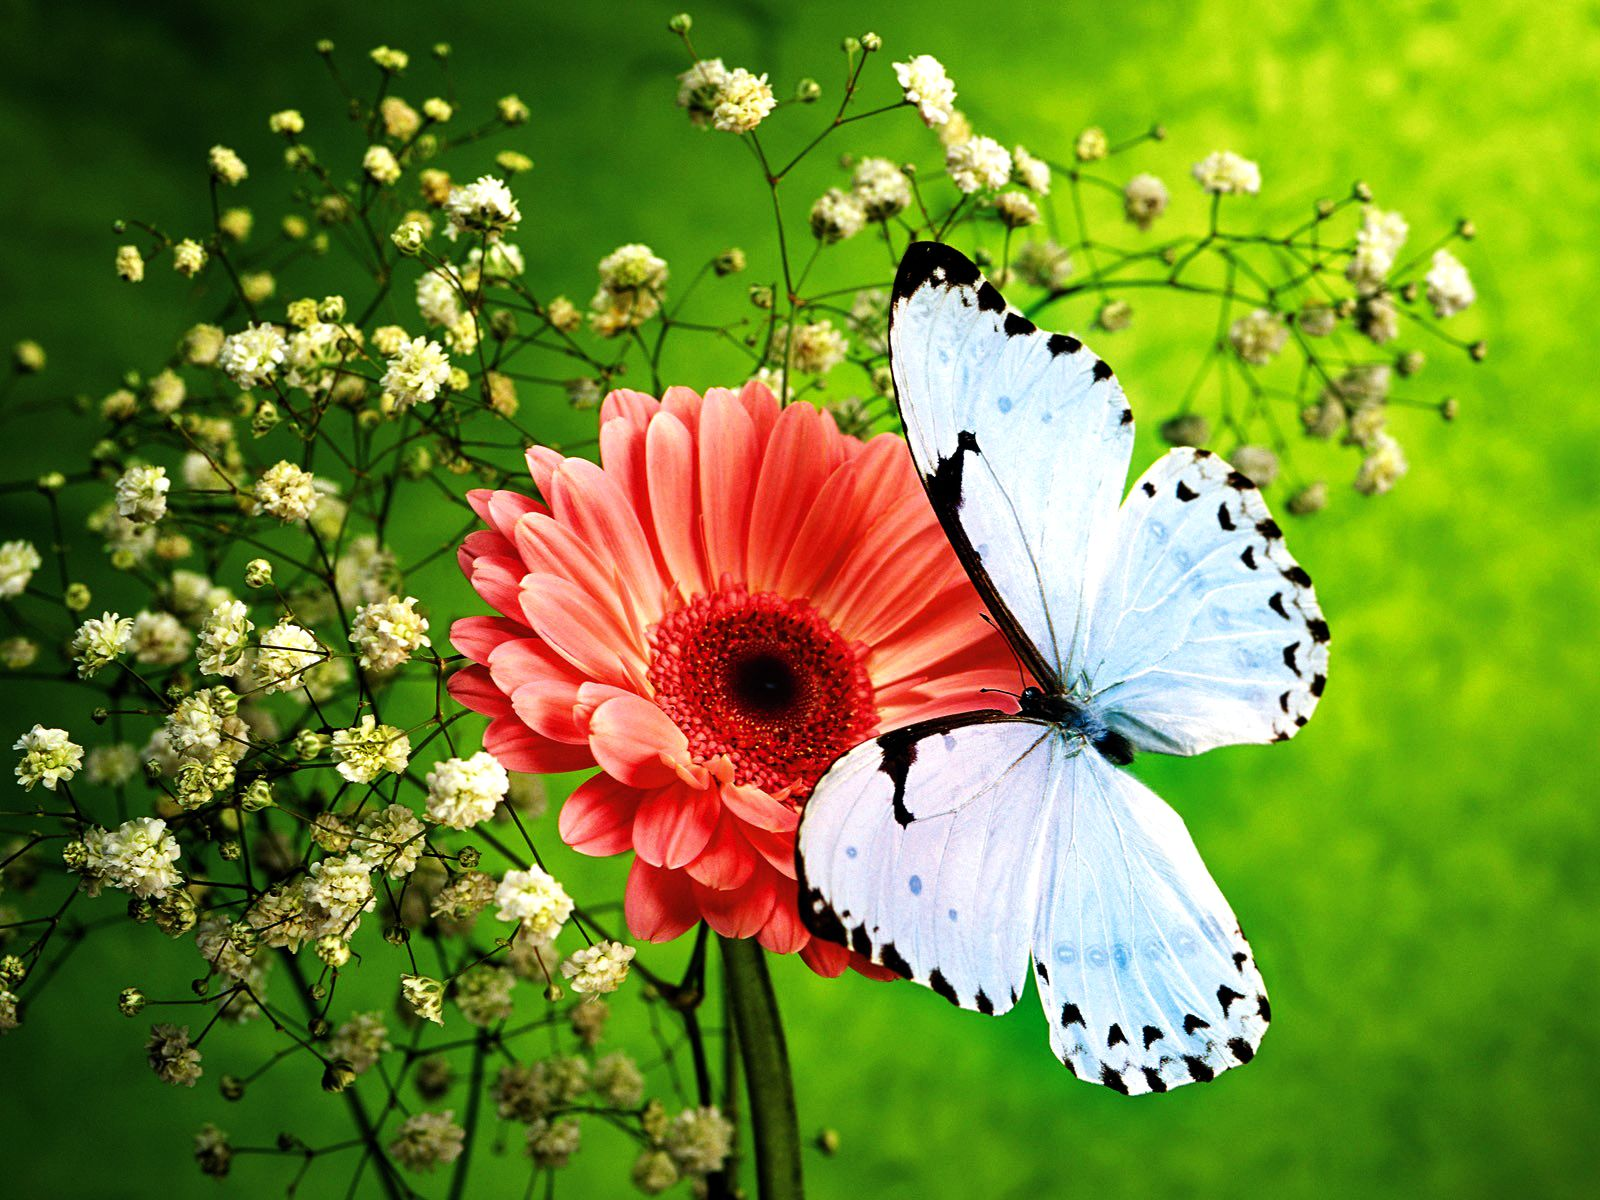 Charmant Flowers And Butterflies | Pink Flower And Beautiful Blue Butterfly